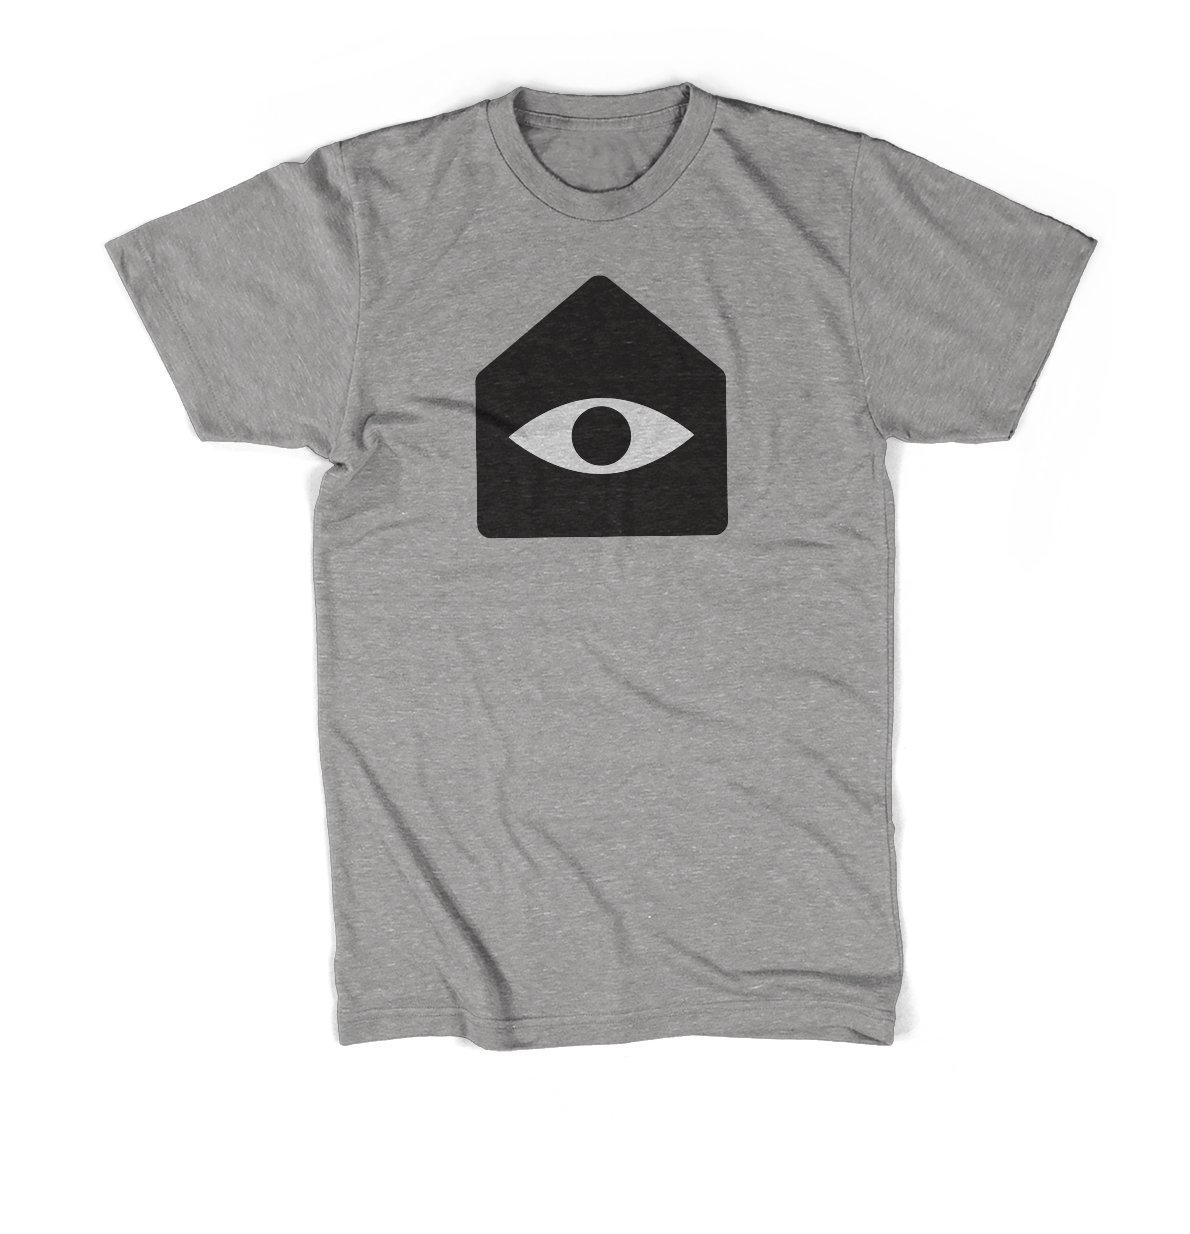 A t-shirt with the Secret Base icon on the front